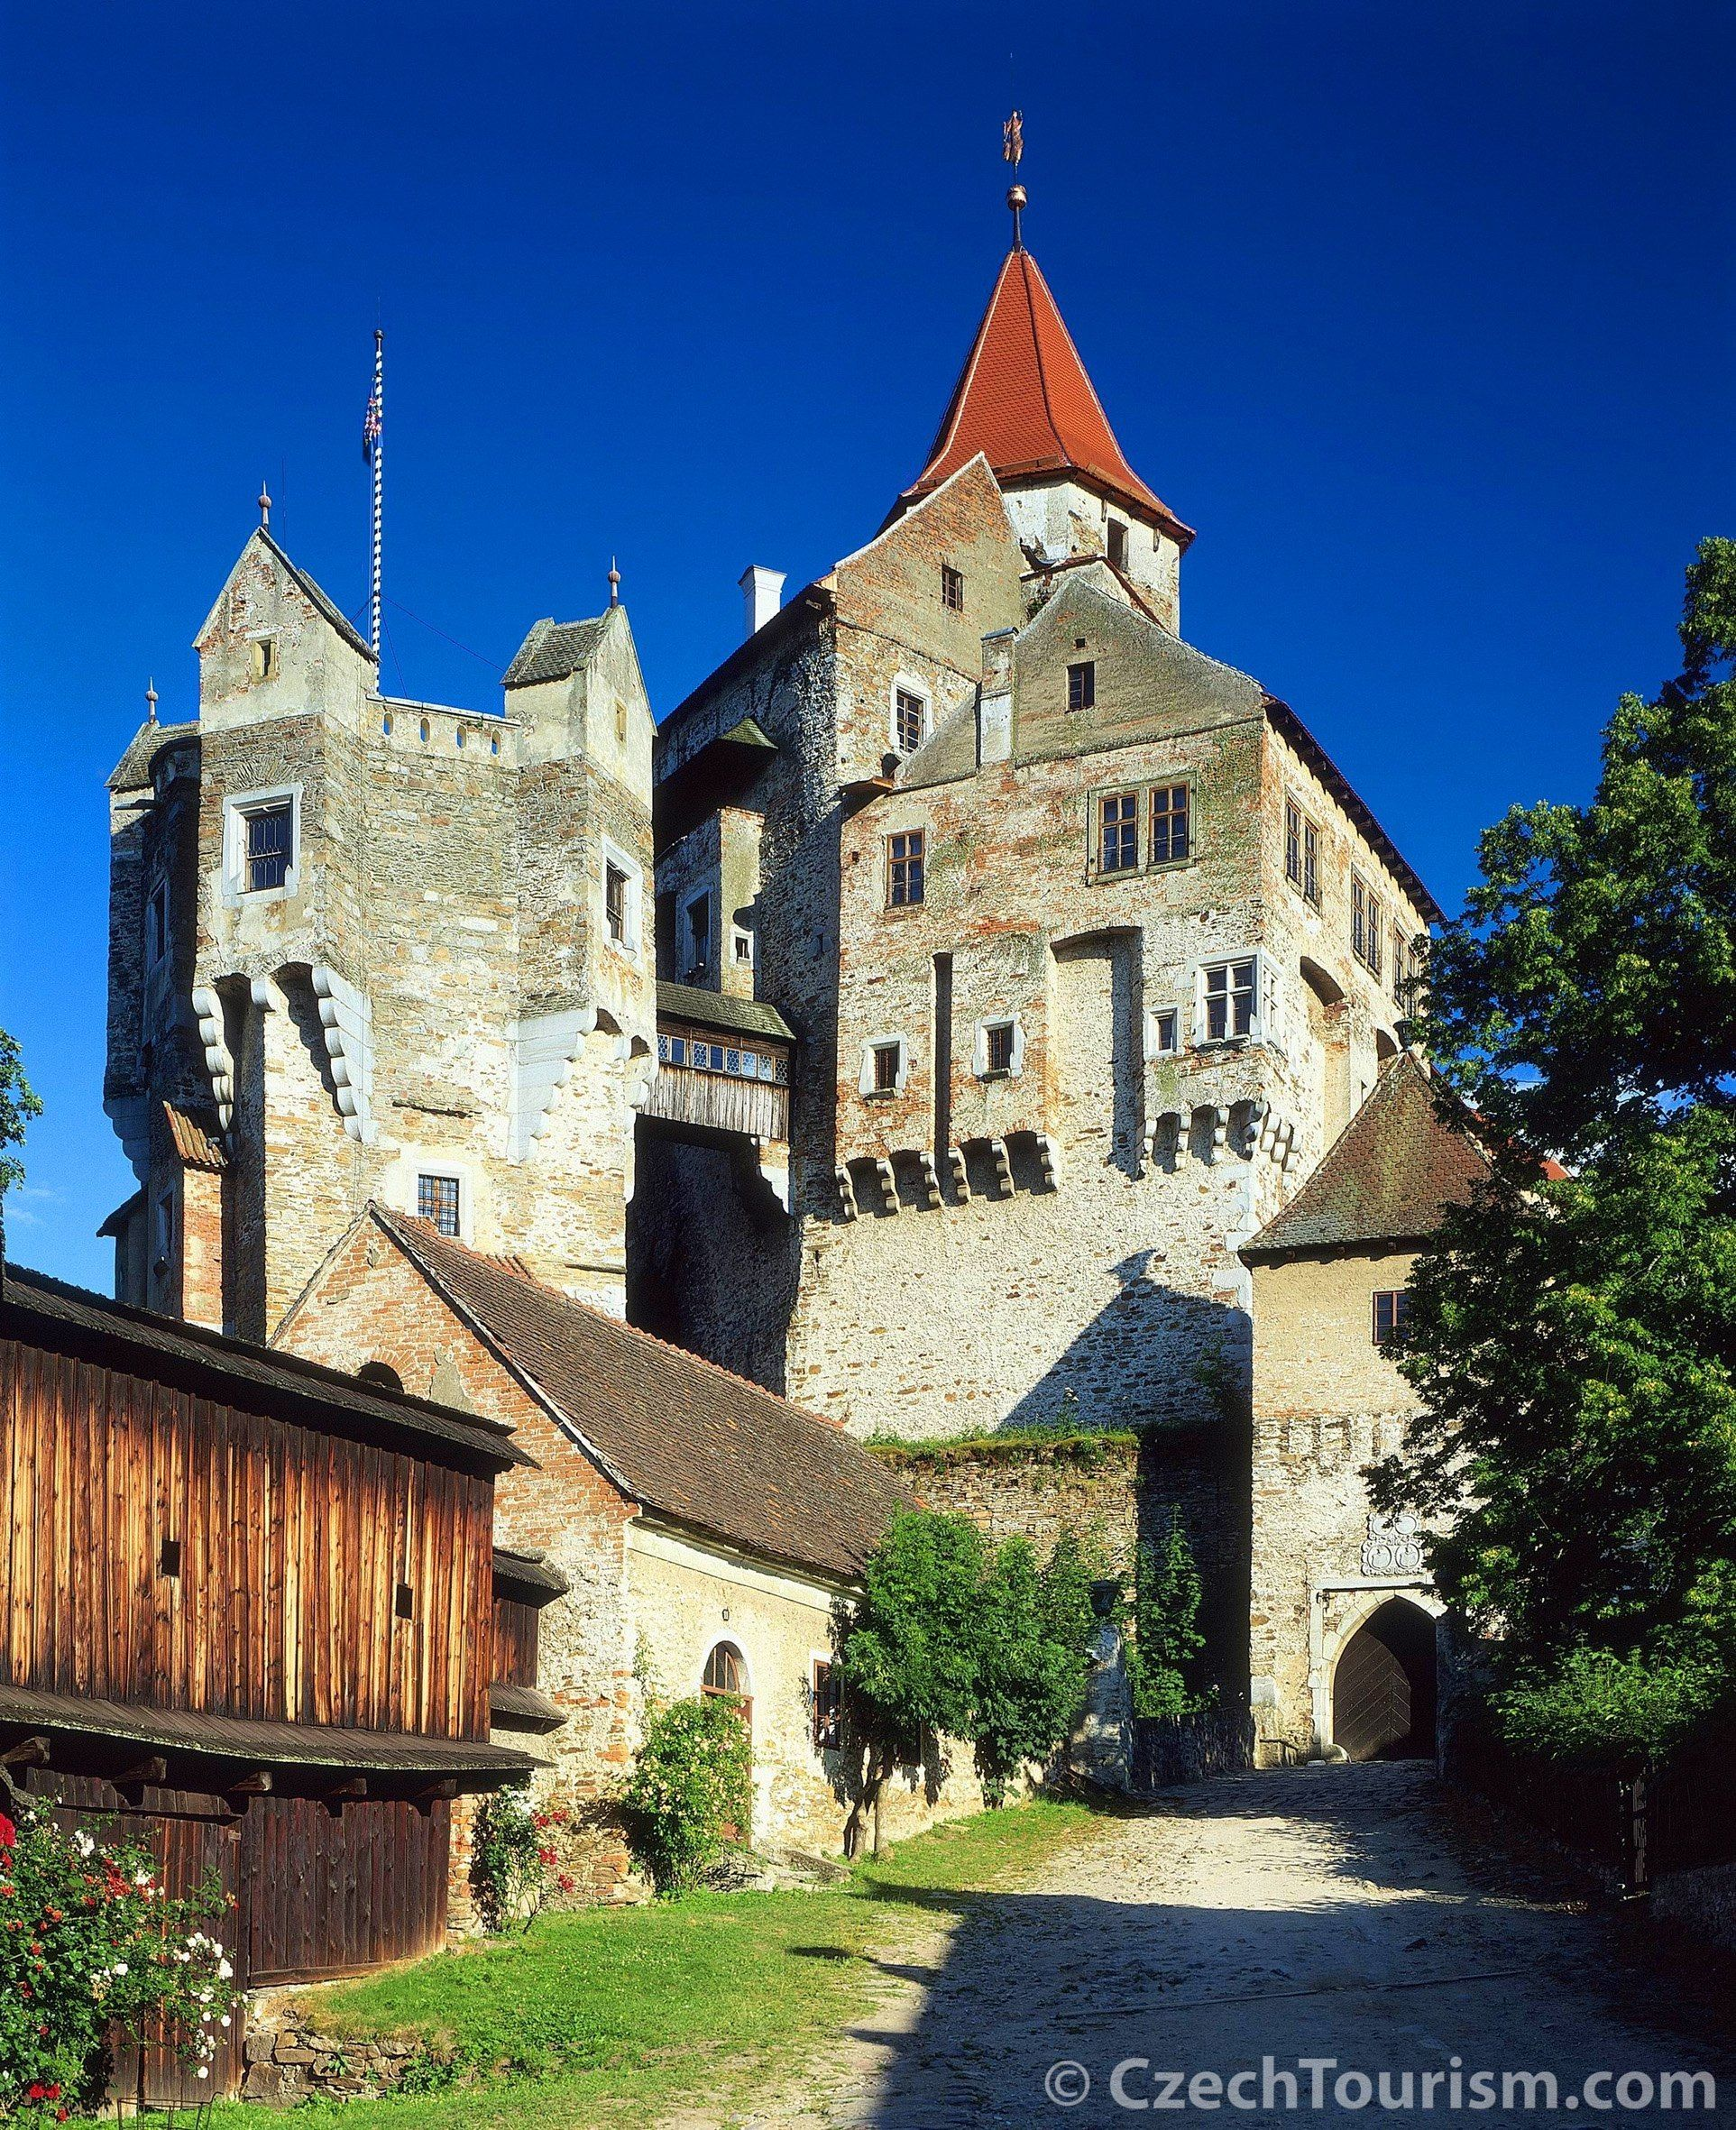 Poerta Coeli monastery and the gothic castle Pernštejn